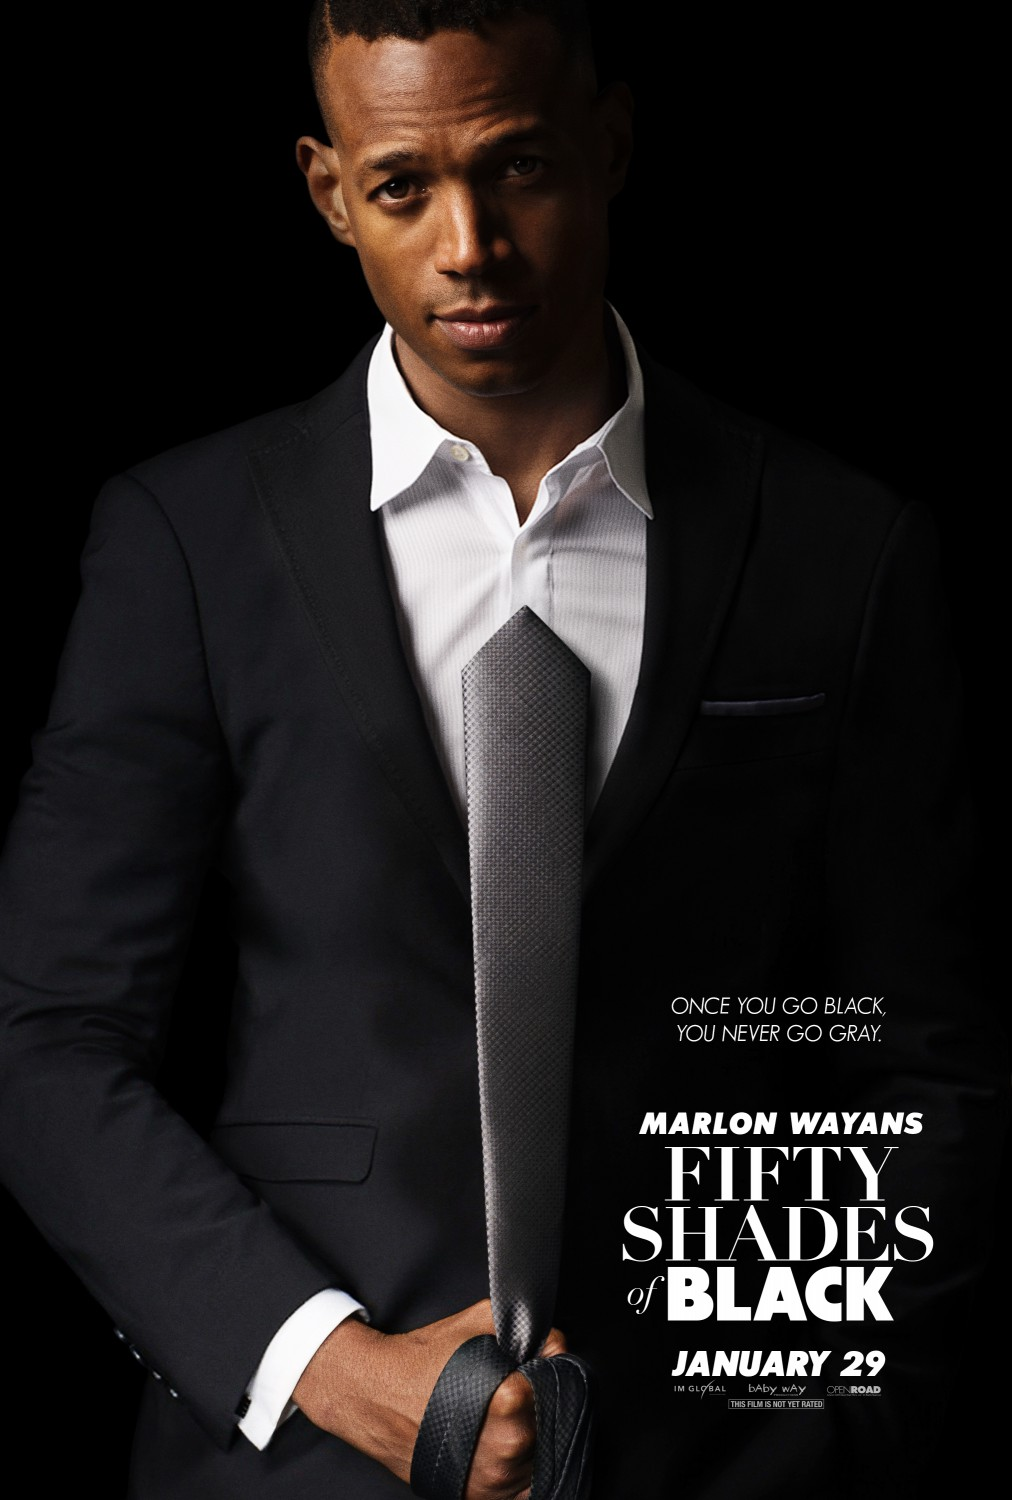 Fifty Shades of Black streaming